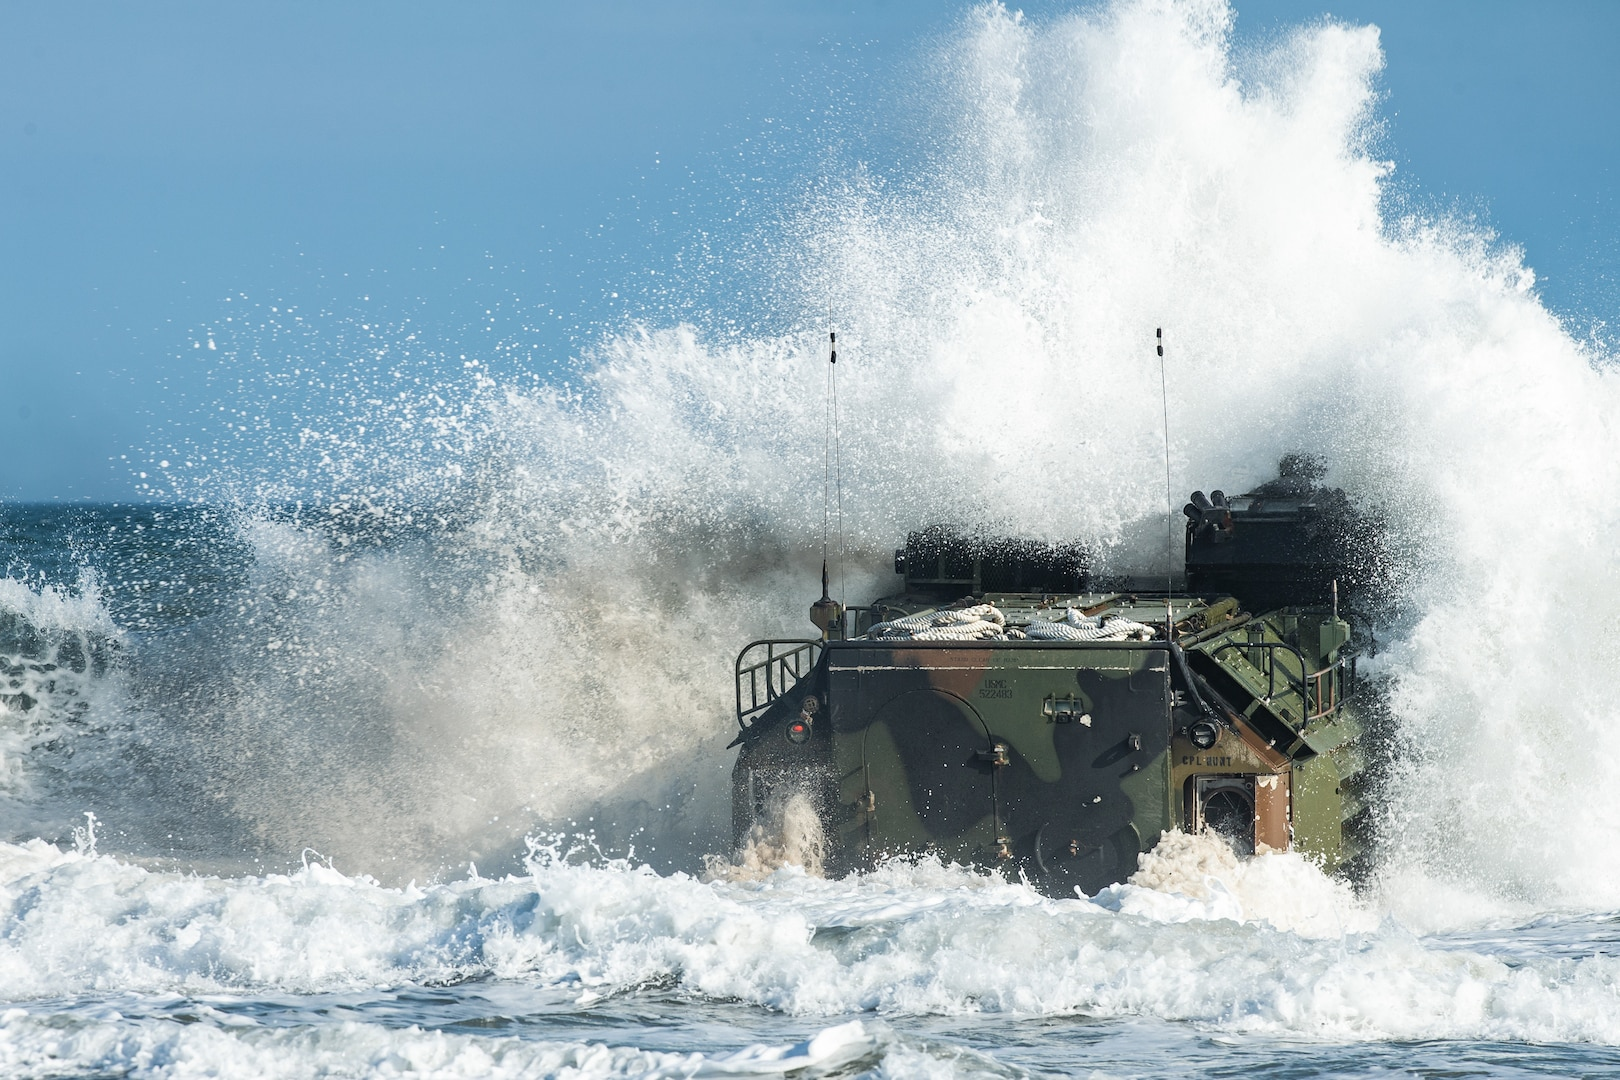 U.S. Marines with 3rd Platoon, Bravo Company, 2d Assault Amphibian Battalion conduct a ship-to-shore event at Camp Lejeune, N.C., March 19, 2020. The annual training requirement was used to maintain and improve the unit's readiness and proficiency while conducting amphibious operations. (U.S. Marine Corps photo by Lance Cpl. Patrick King)